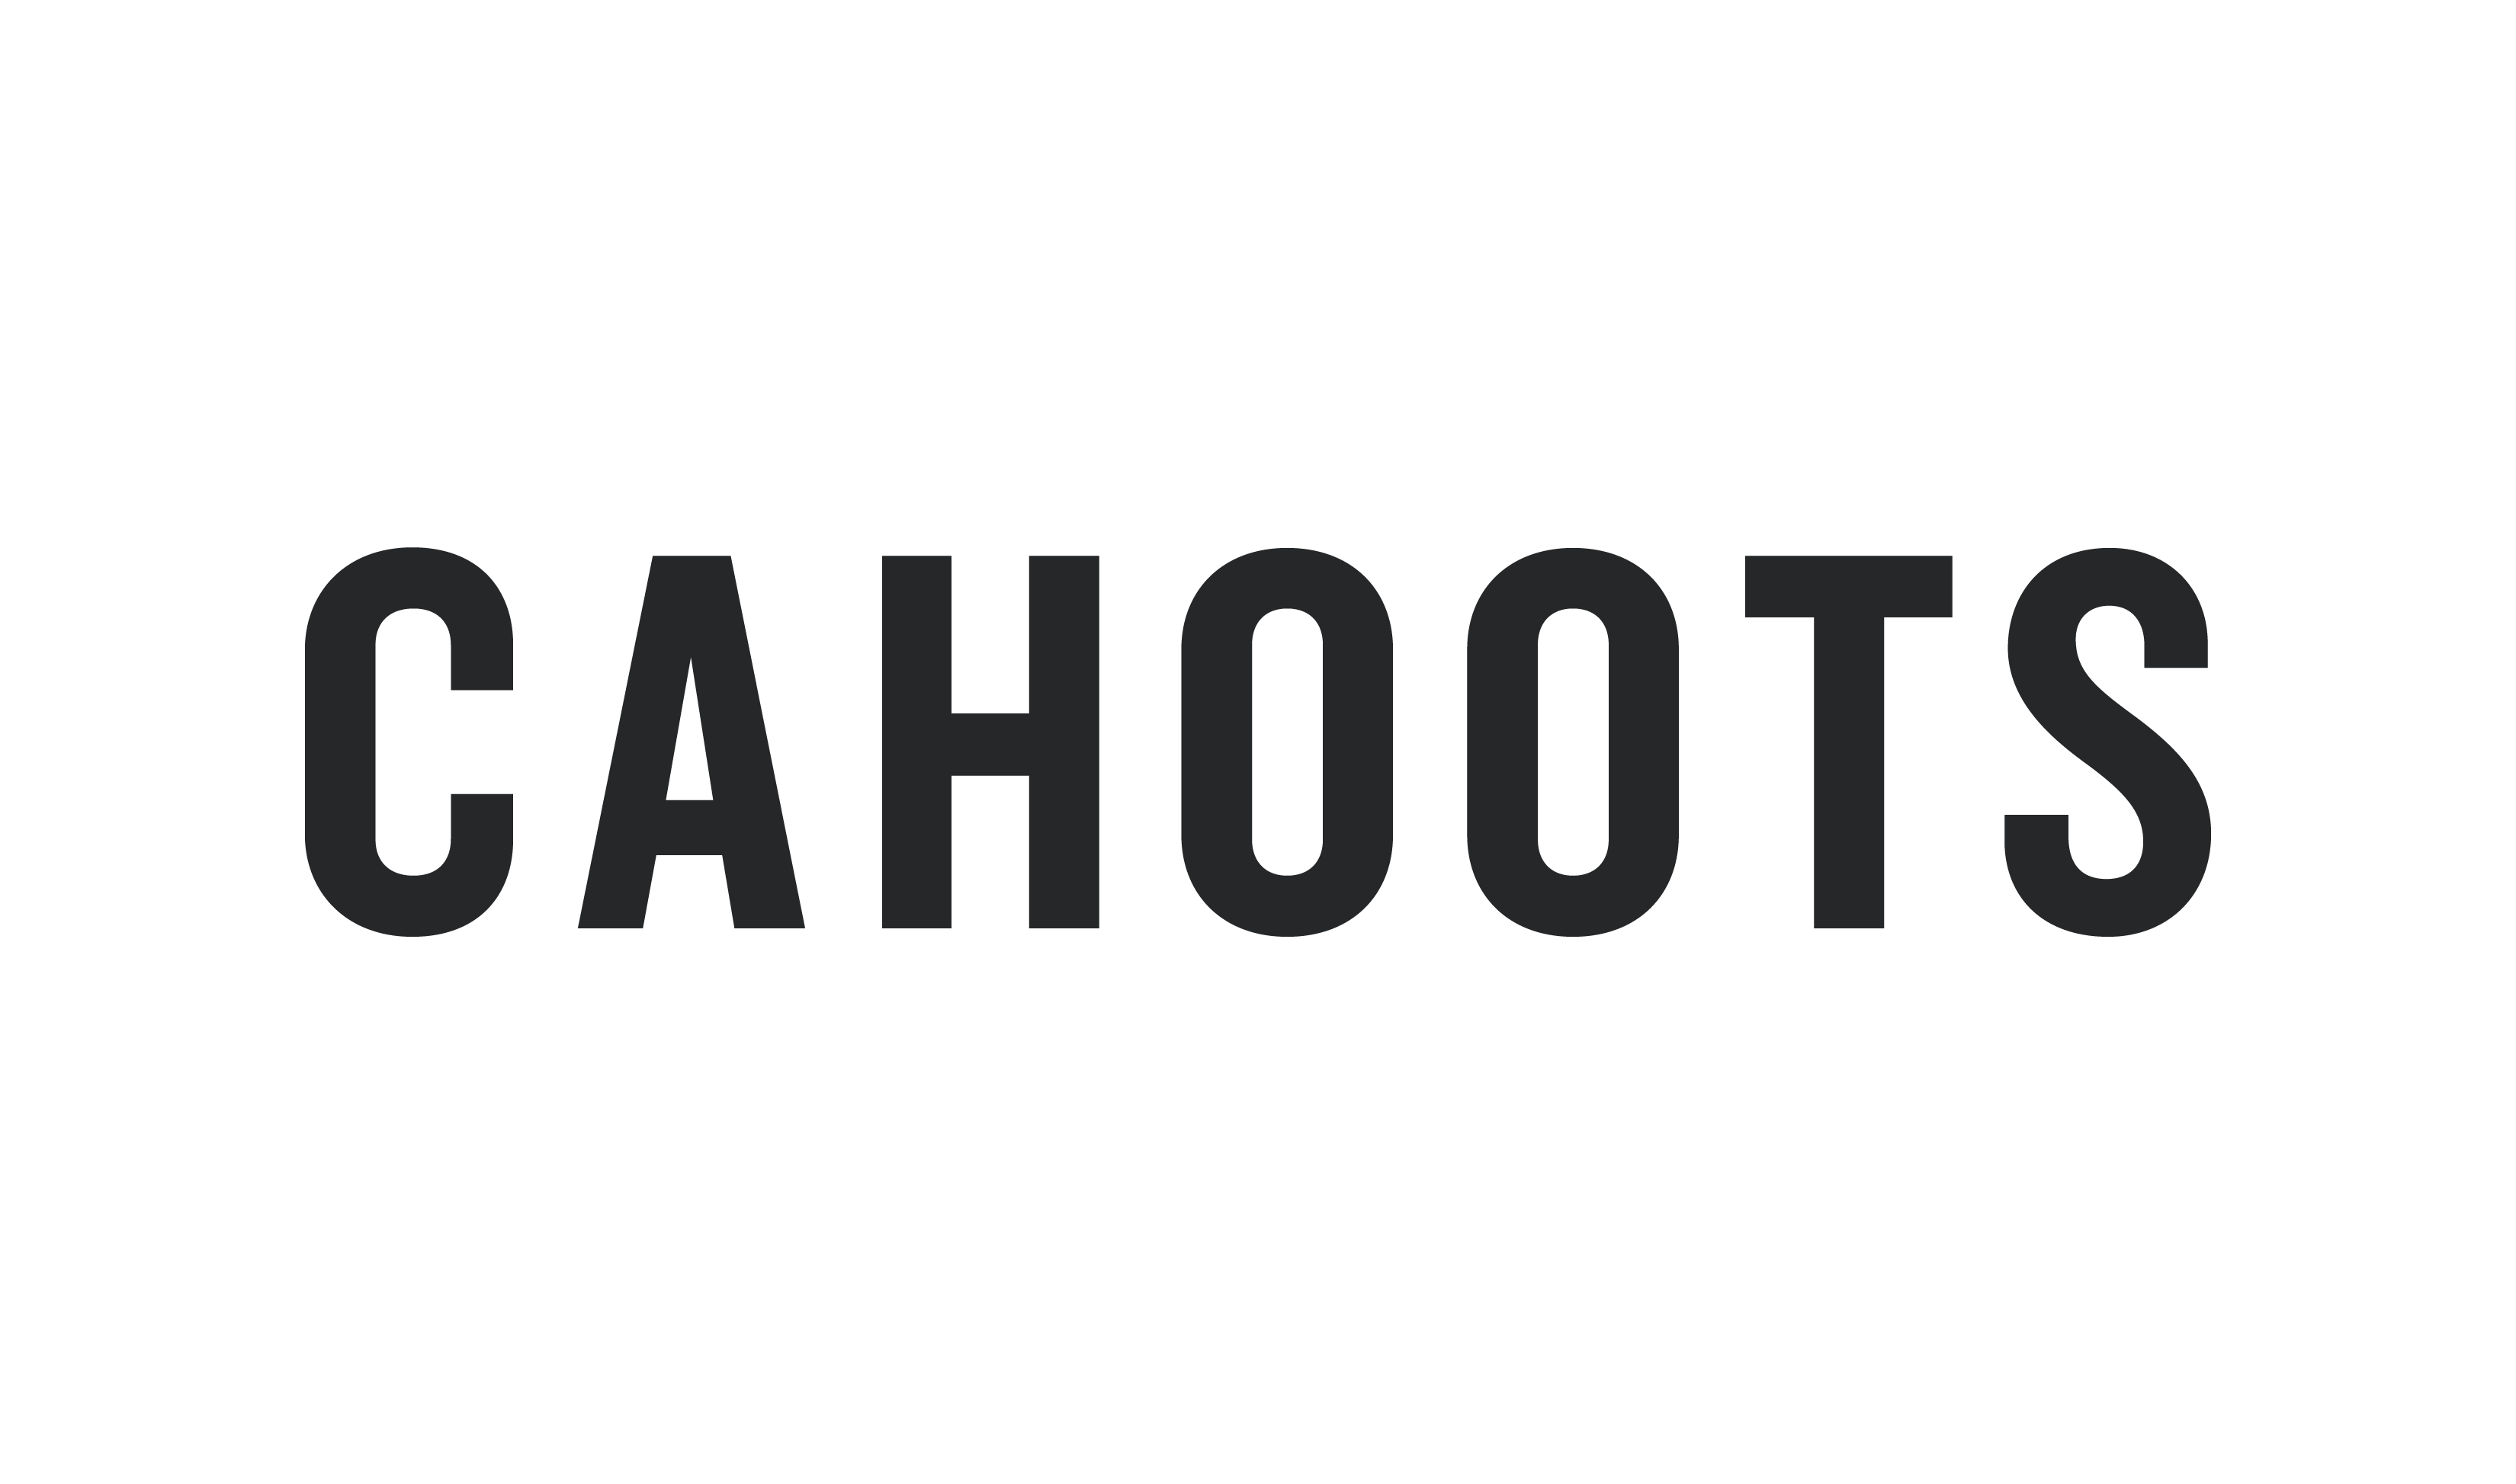 Cahoots, Community Space